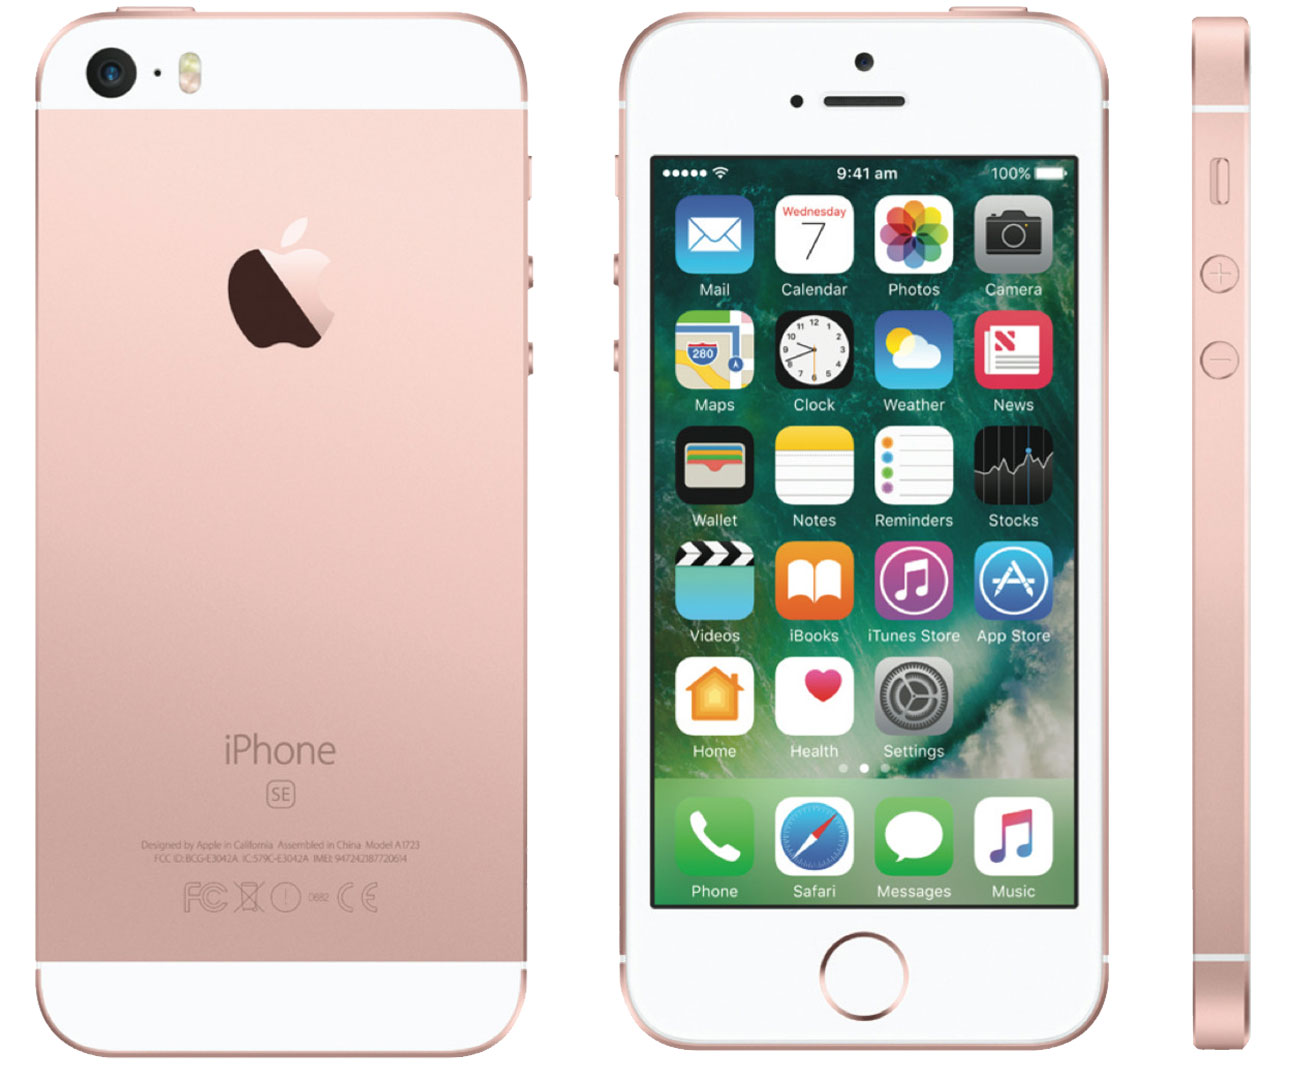 apple mp852b a iphone se 32gb 4 12mp sim free smartphone in rose gold ebay. Black Bedroom Furniture Sets. Home Design Ideas